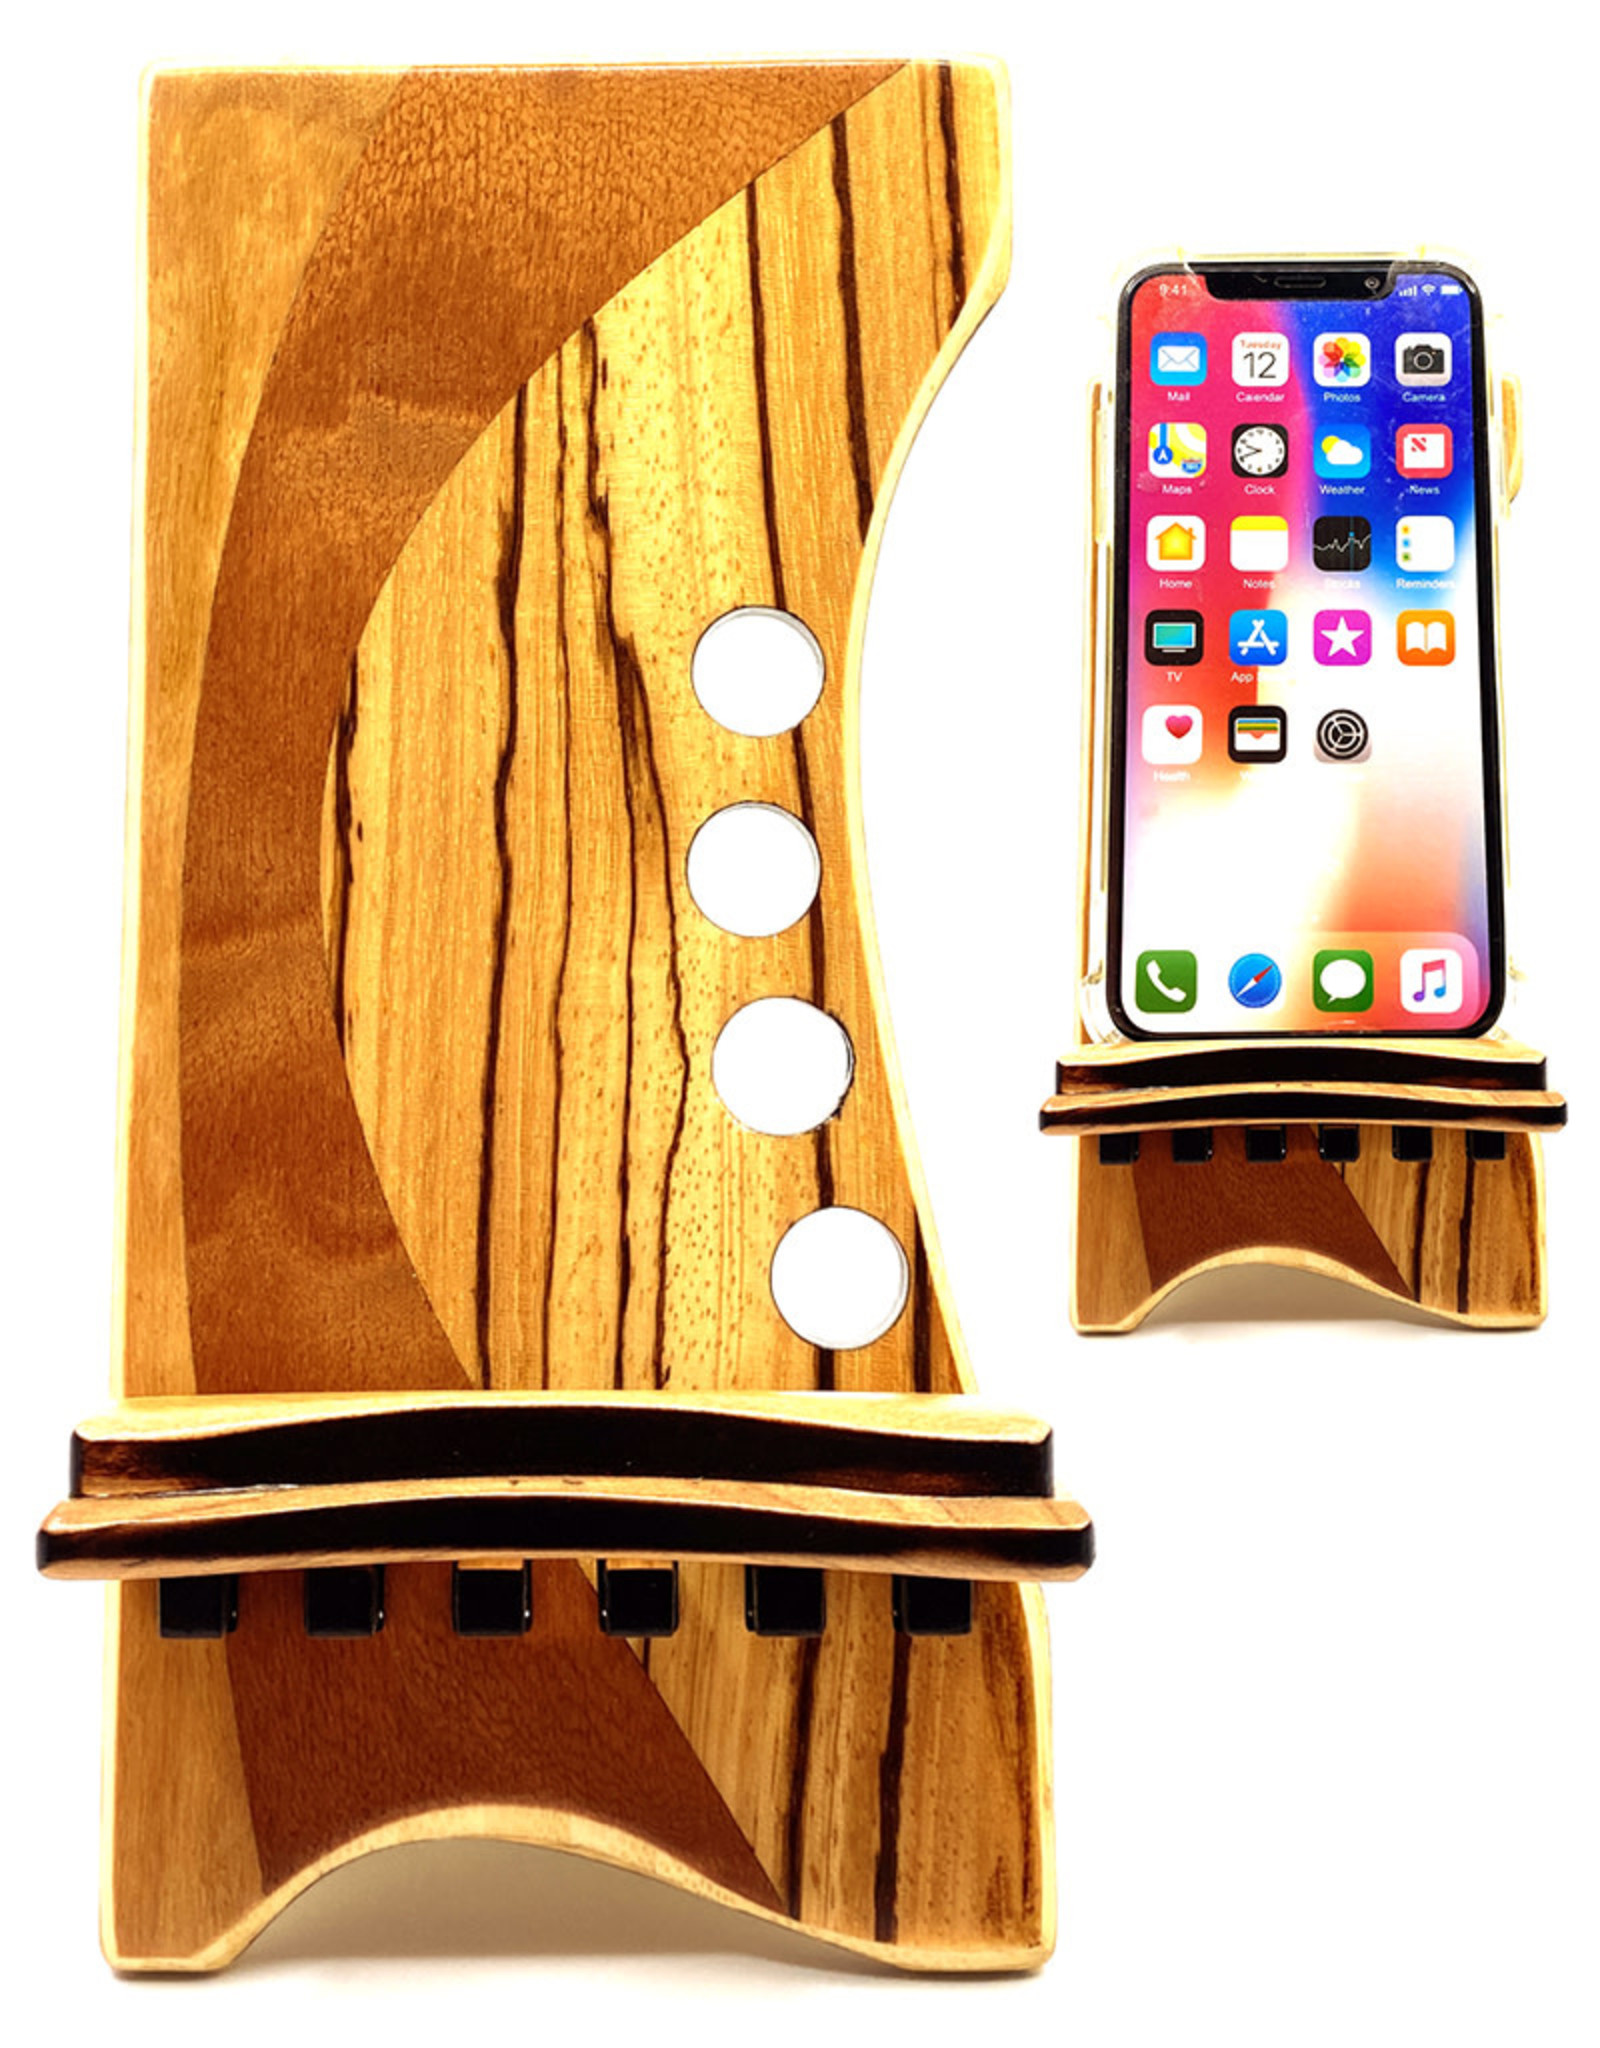 LOST ART WOODWORKS NATURAL WOOD VIII MARQUETRY INLAID PHONE STAND